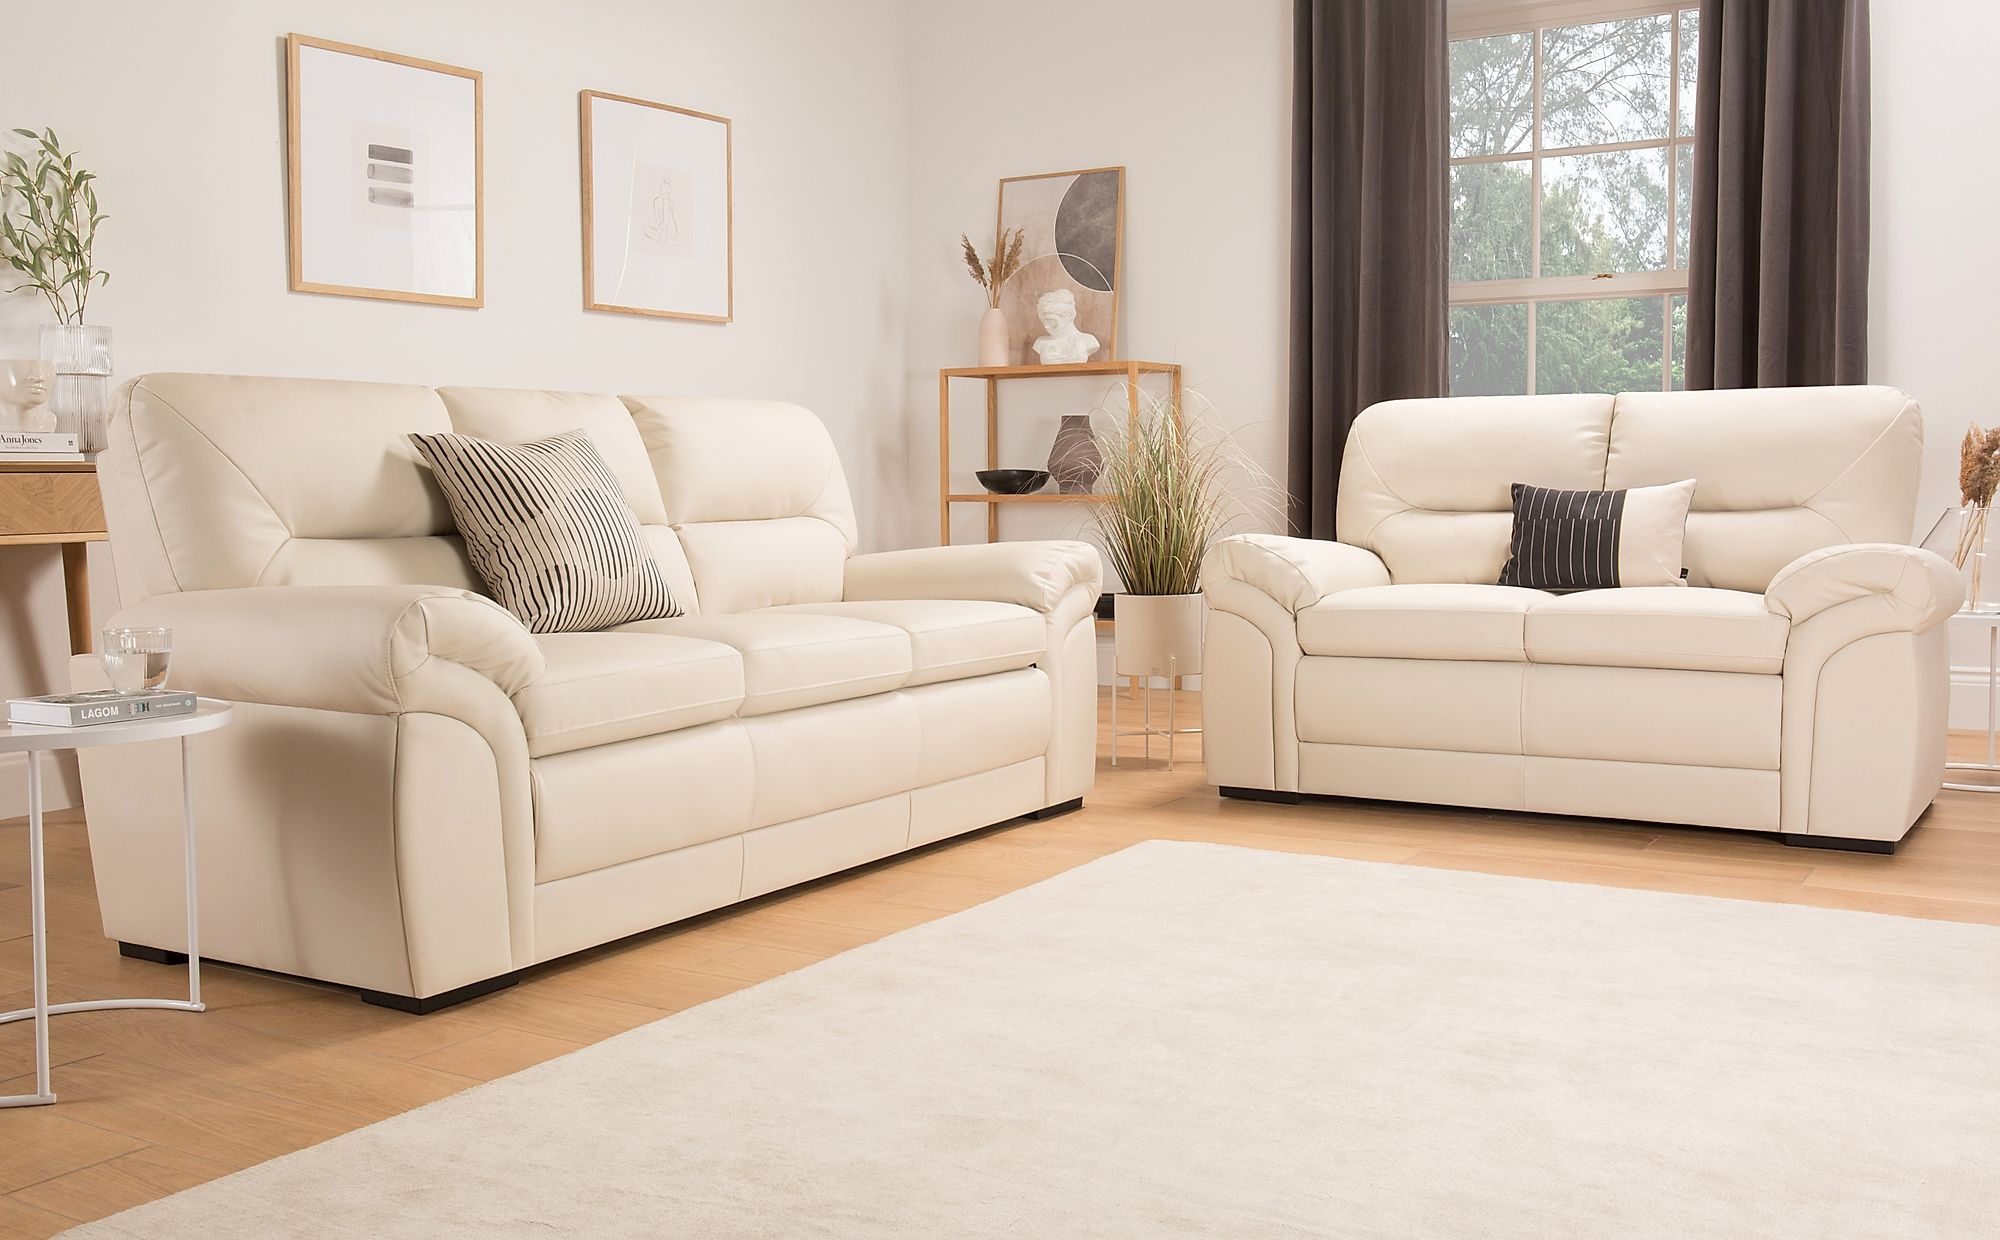 bromley ivory leather sofa 3 2 seater only 849 98 furniture choice rh furniturechoice co uk ivory leather sofa sectional ivory leather sofas uk